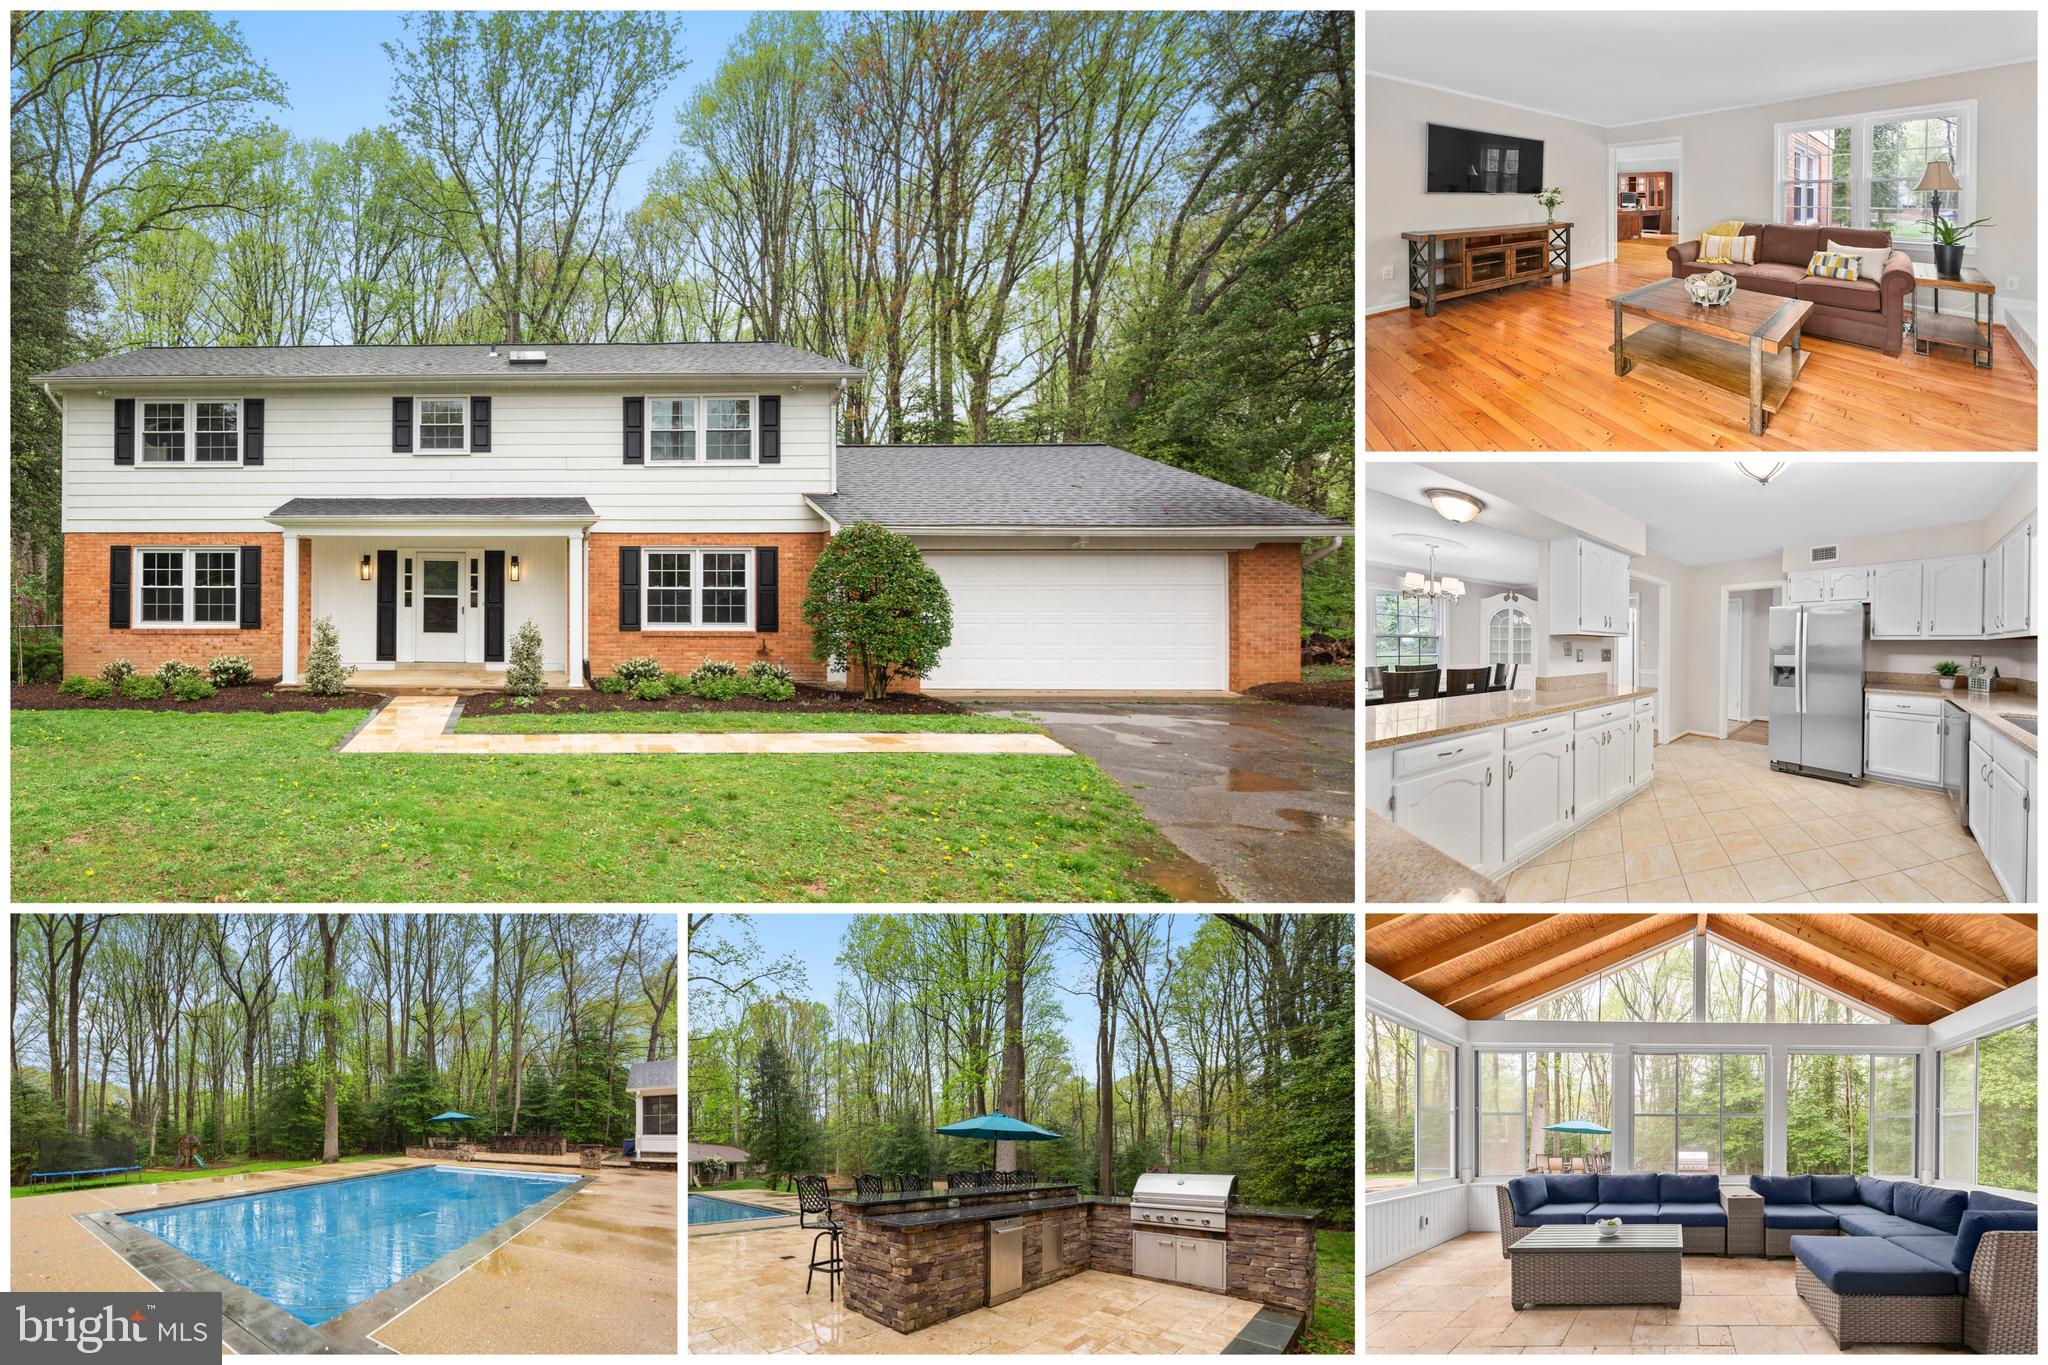 Don't miss out on this one! Vacation at home! This lovely updated gem is like a resort in itself with custom-built backyard oasis on a private acre lot just minutes to Reston Town Center & the Silver Line Metro. This is an entertainer's dream! You'll love the spectacular three-season room with vaulted ceilings & heated floors that leads out to the travertine patio with custom granite bar & built-in grilling station. Tons of fun with a heated salt-water gunite pool with custom sunshelf & custom lighting & automatic safety cover. The home is sunny & bright with generous sized rooms throughout, beautiful hardwood floors, crown molding, built-ins, fireplace & wood stove. Updated kitchen features granite counters, stainless steel appliances & breakfast bar. Fully finished basement has a wet bar, rec room, fireplace & guest room. Fully fenced backyard with plenty of room to play & garden. Updates galore include roof, sliding glass doors, water treatment system, water heater, French drain, newer septic system & more. Sought-after Oakton High School pyramid & centrally located with easy access to major commuter routes right around the corner from dining, grocery, shops & entertainment. Offer deadline has been set for 2pm on Monday 04-19-21.